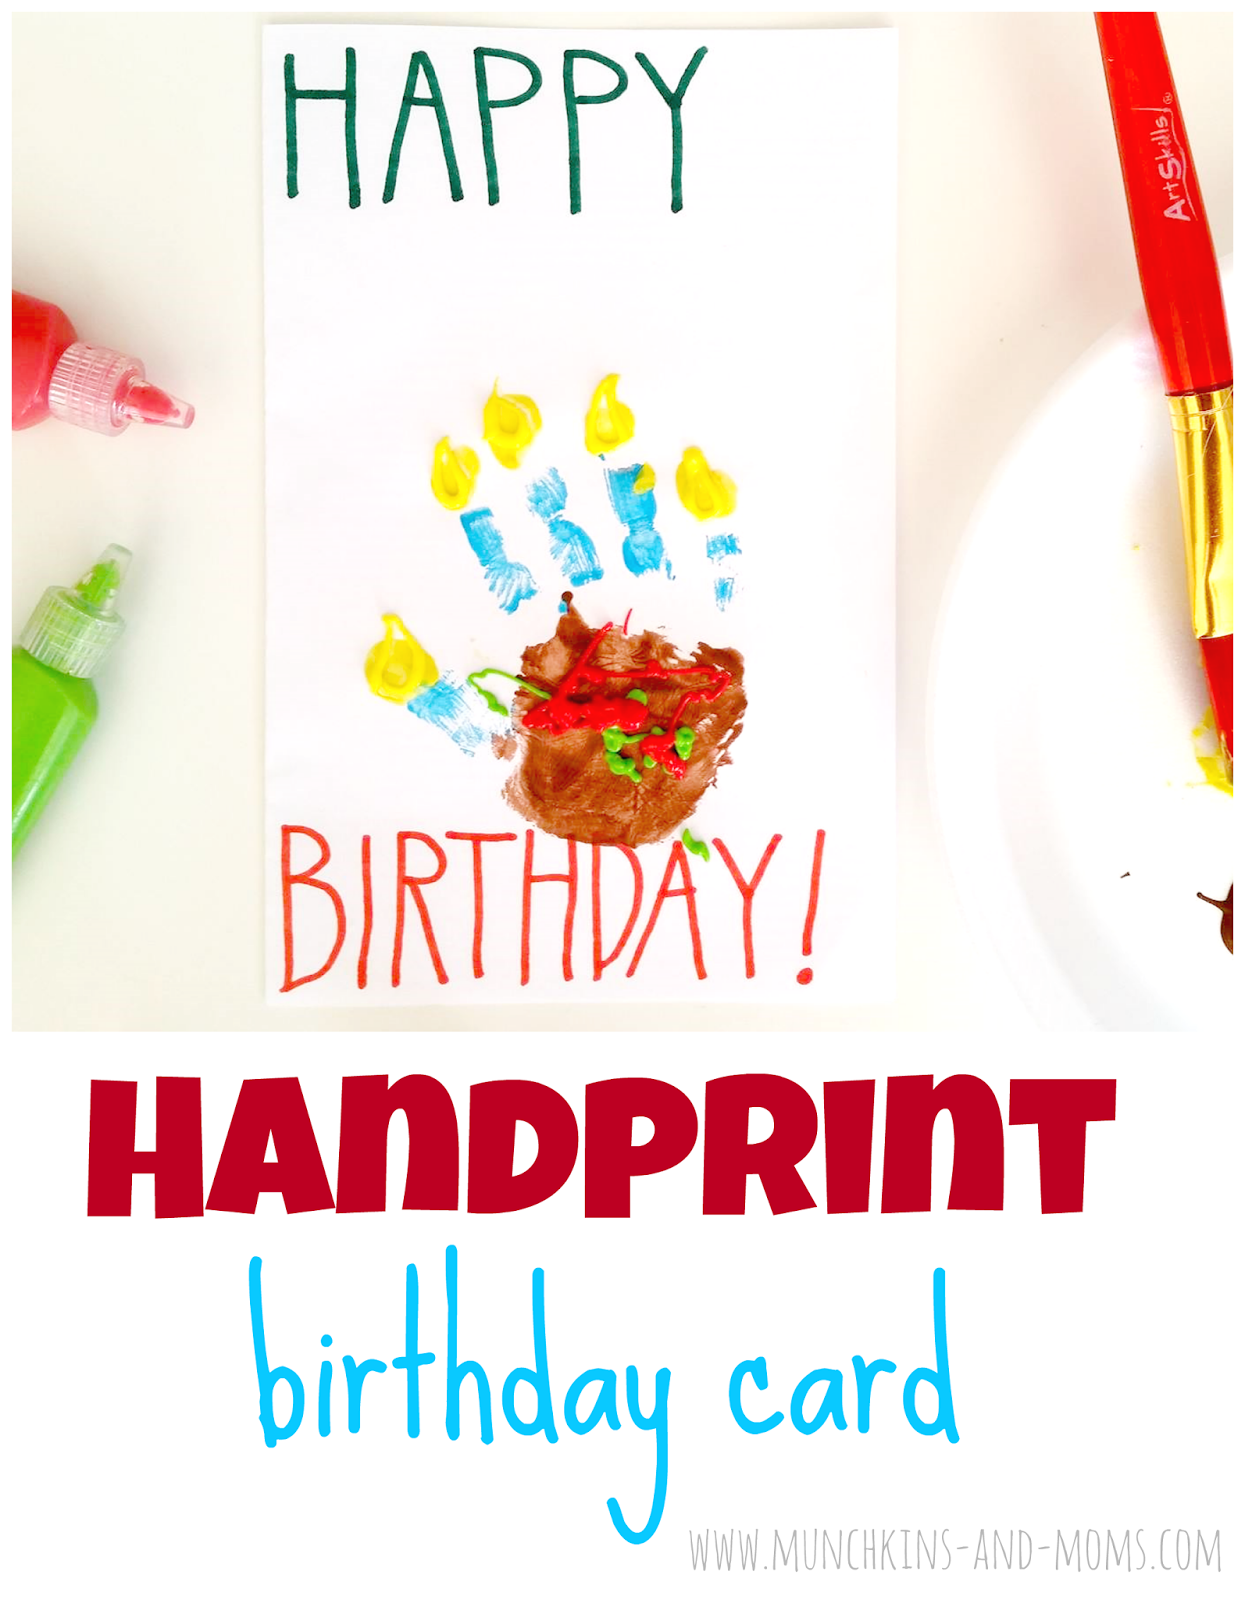 Handprint birthday cards made to look like a piece of cake diy